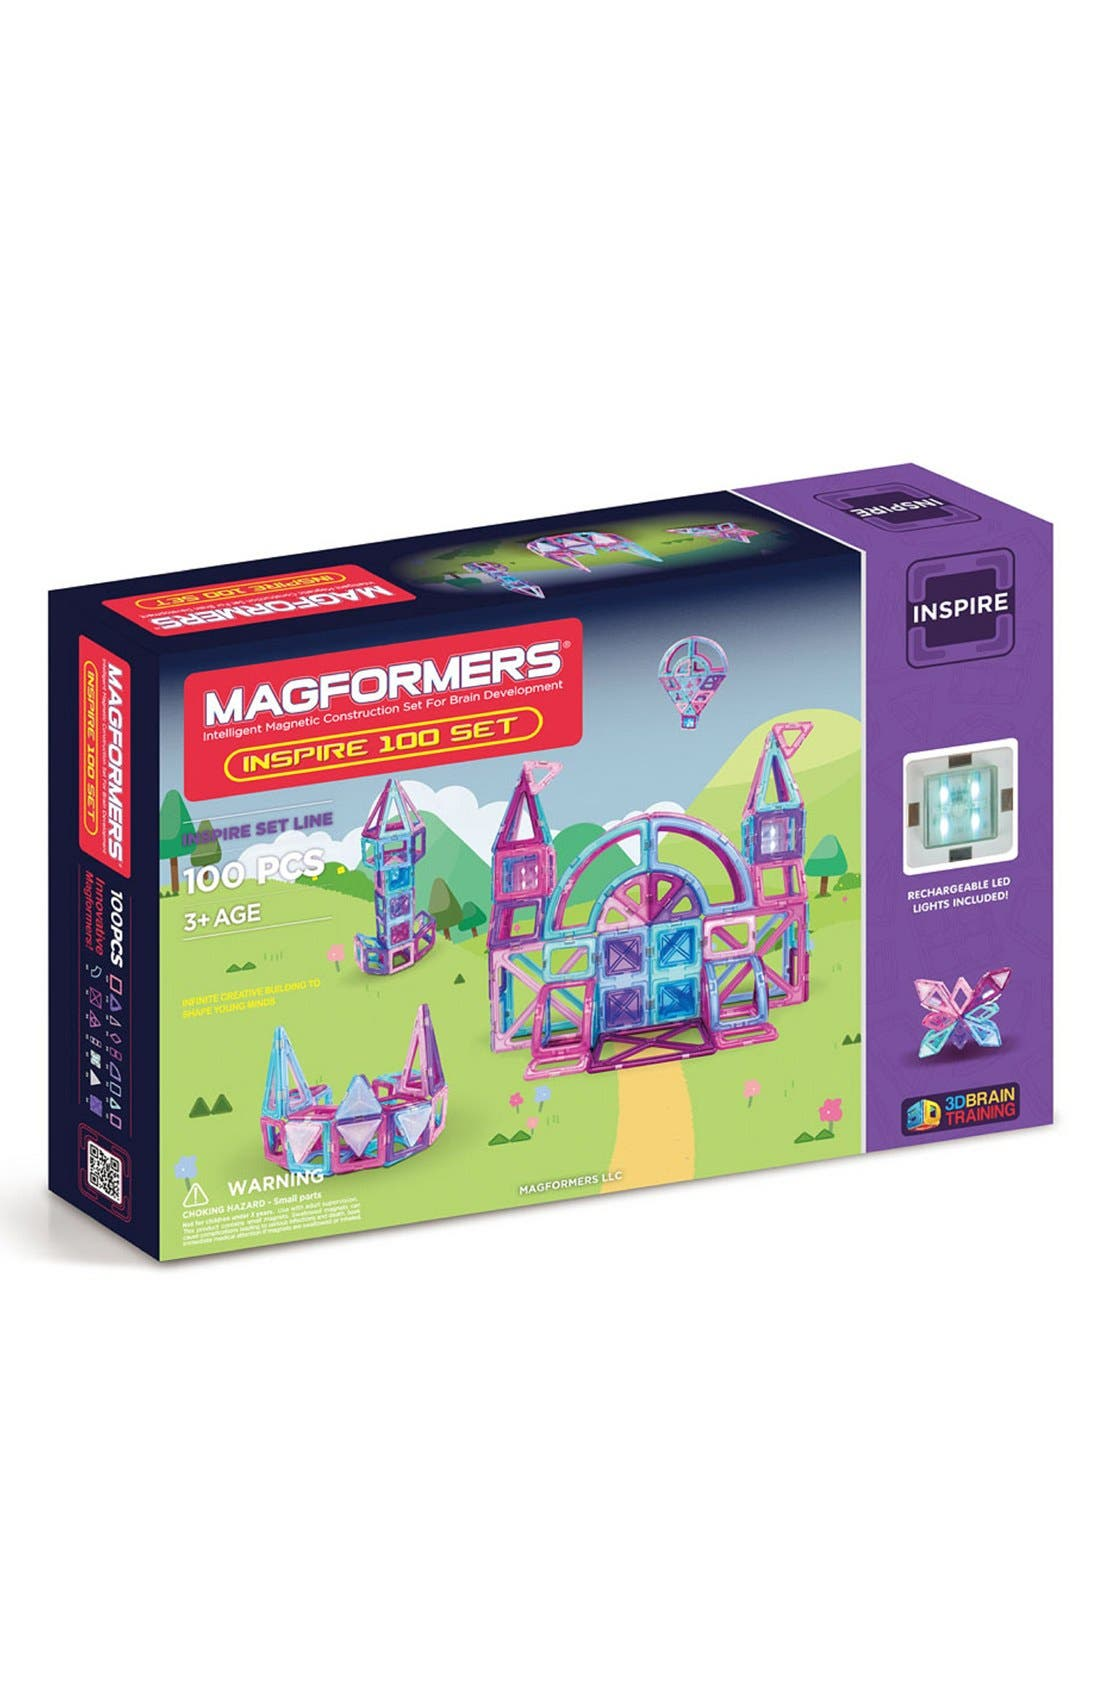 Magformers 'Inspire' Magnetic Construction Set